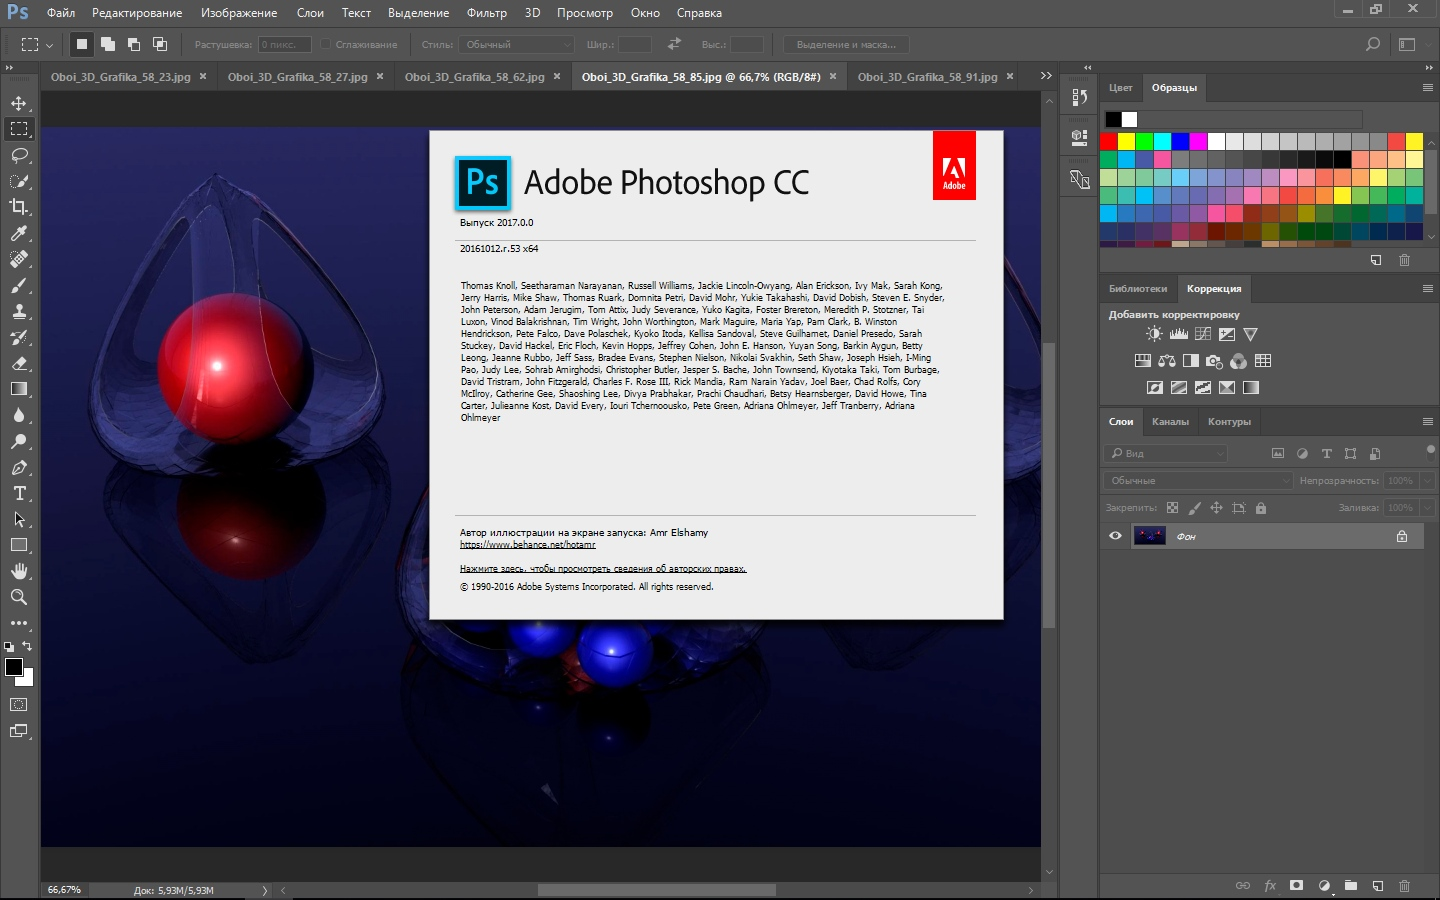 Adobe Photoshop CC 2017.0.0 2016.10.12.r.53 (Unofficial version) (2016) MULTi / Русский